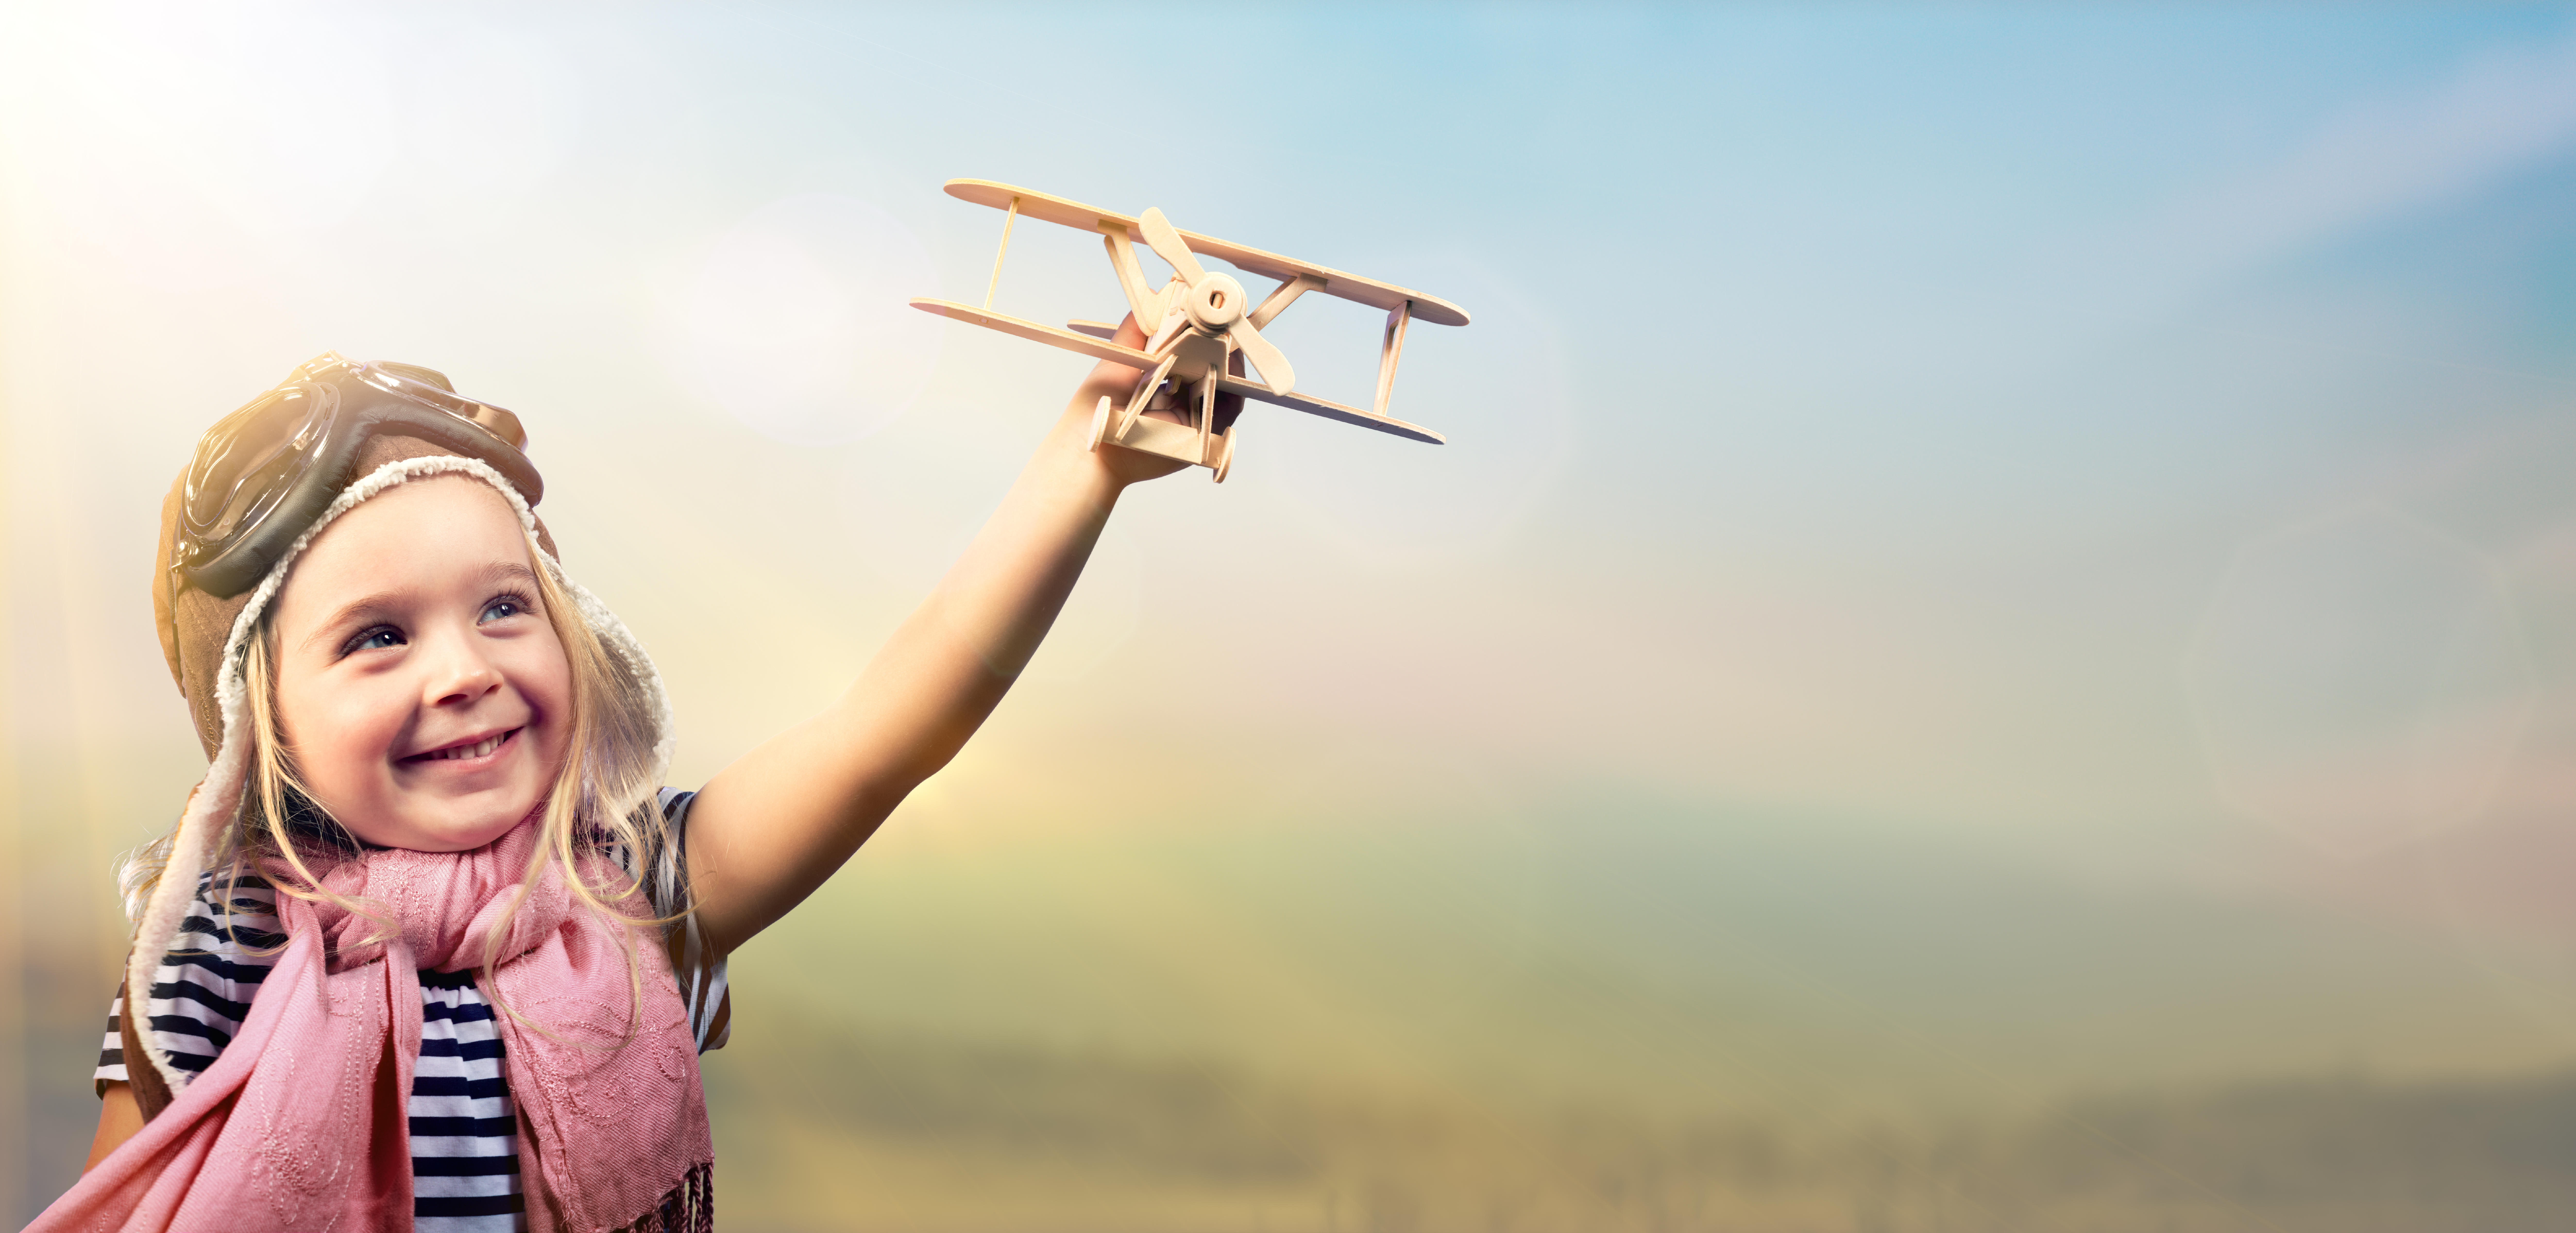 Girl with toy airplane